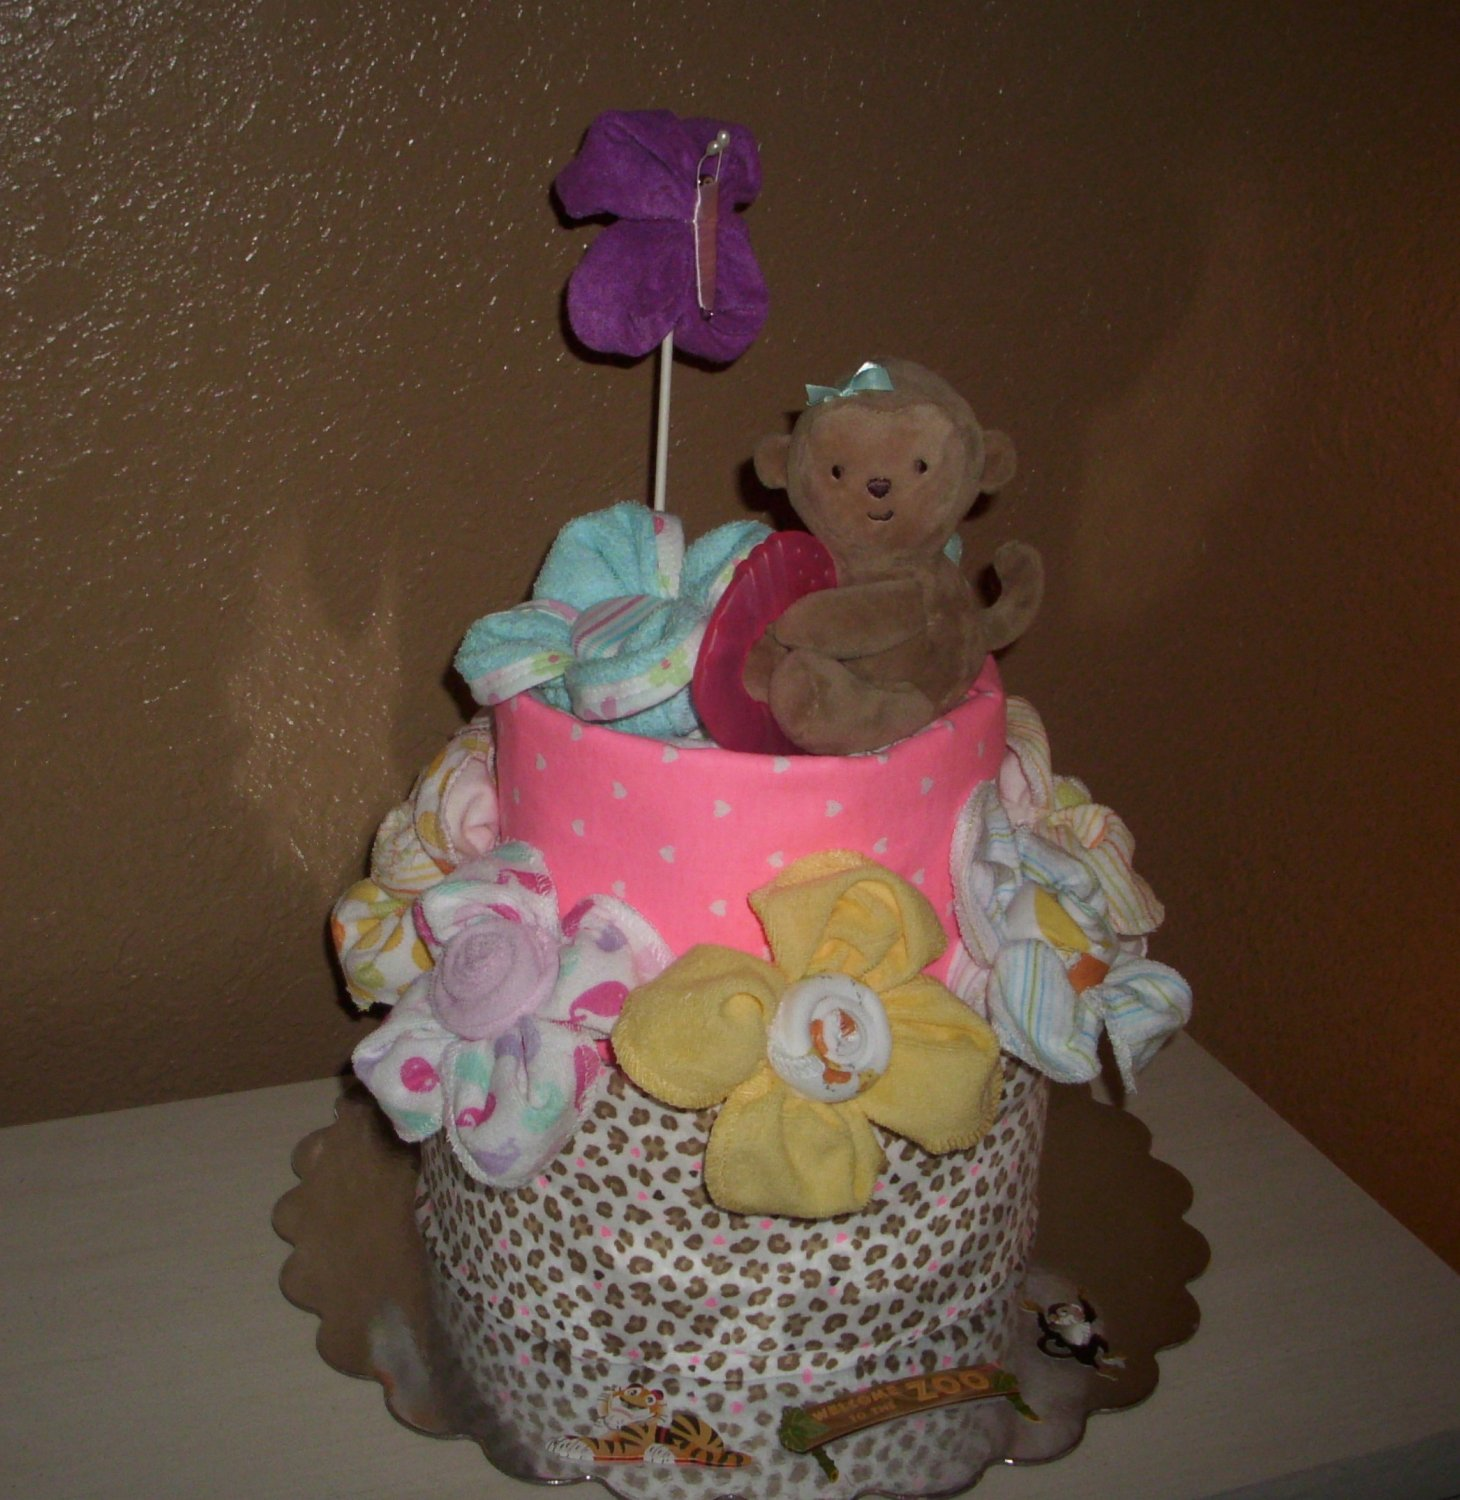 Monkey Diaper Cake, Baby Girl 2 layer cake, Stuffed with goodies